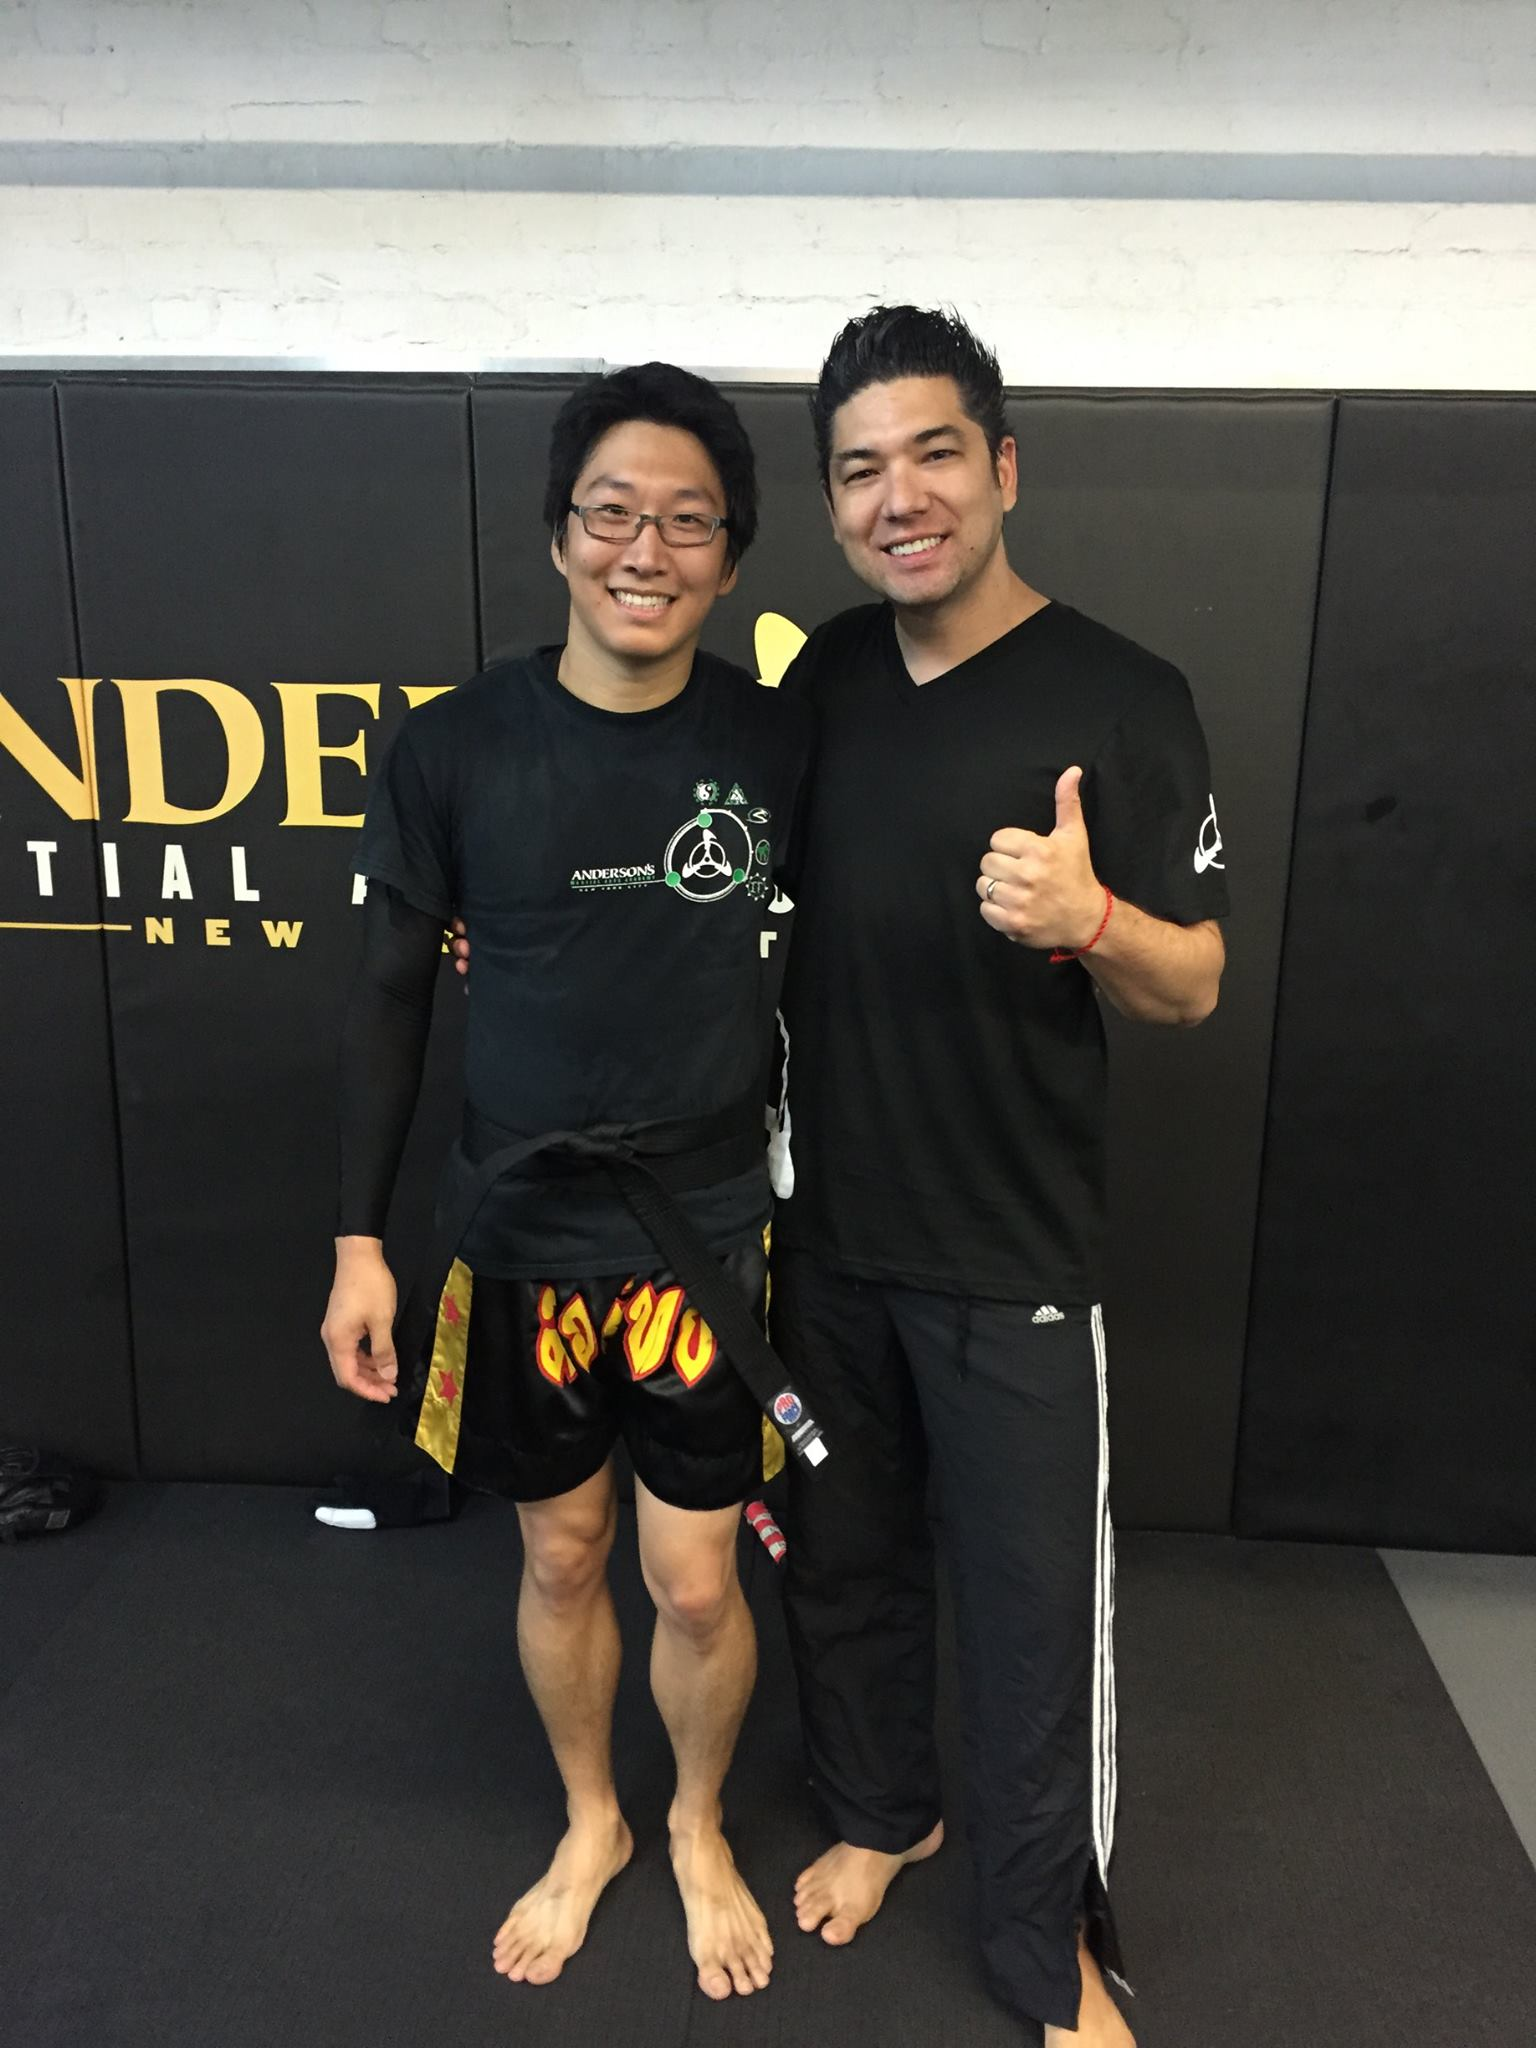 Anderson's Martial Arts Student Alex Paik Receives His Black Belt, at AMAA New York City